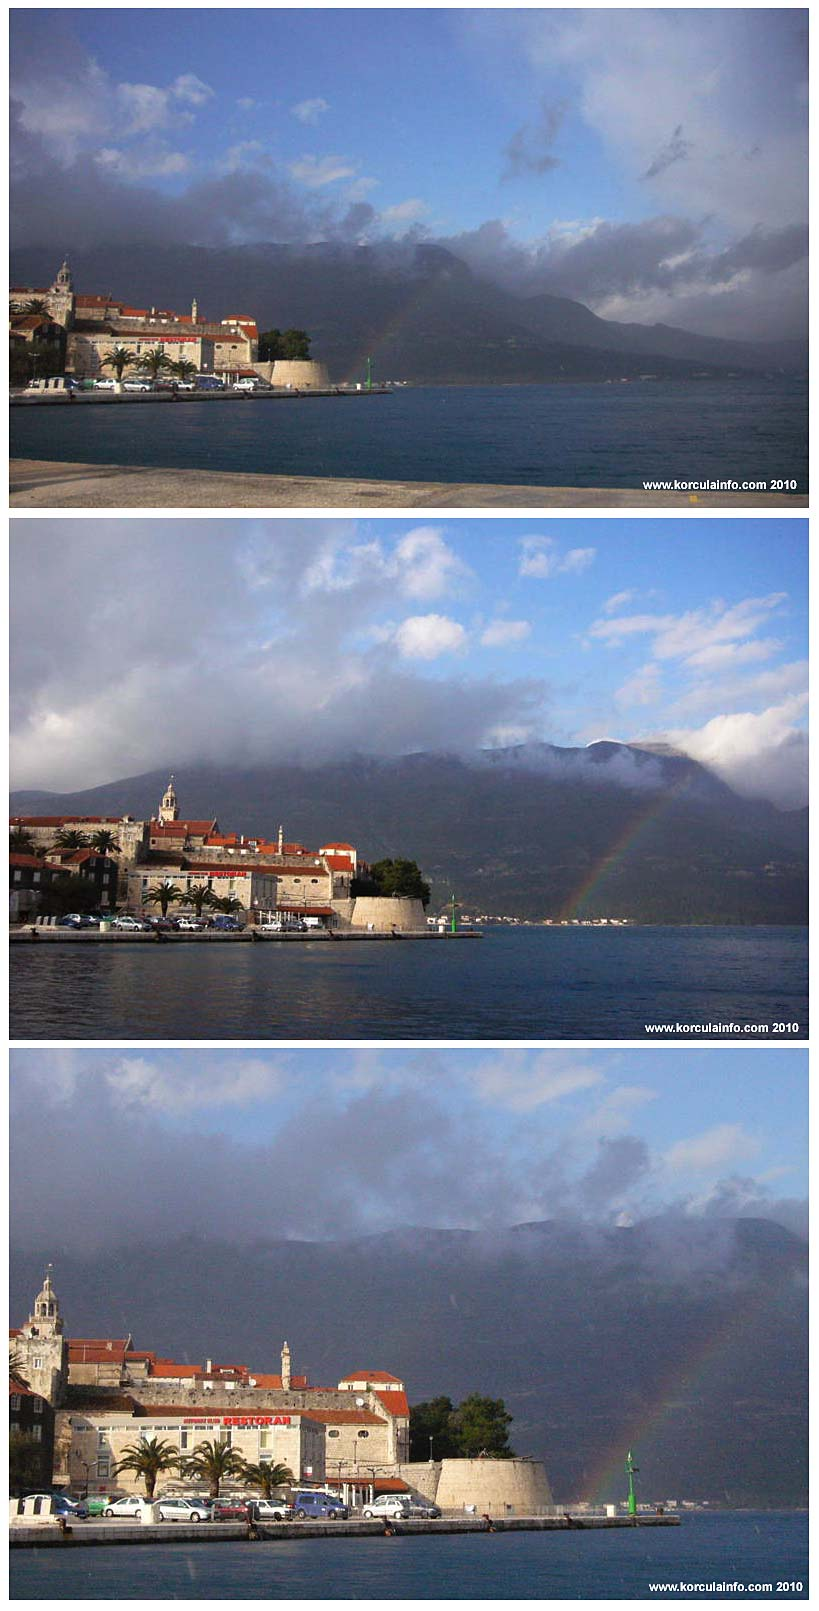 Rainbow in front of Korcula Town (2010)